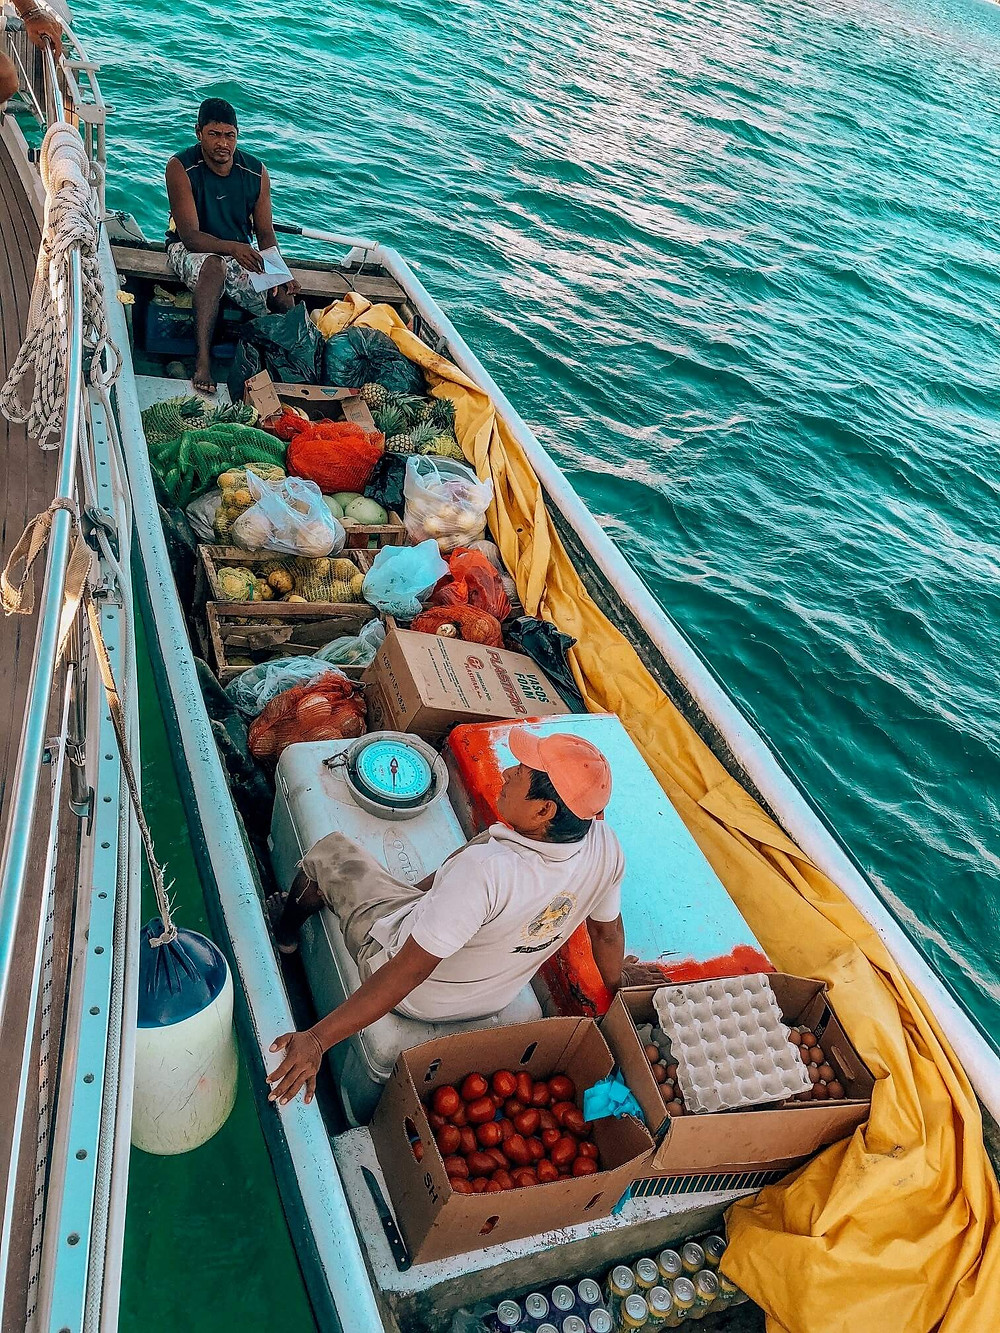 san blas panama kuna boat suplying sailboats with groceries, fresh fruit and vegetables